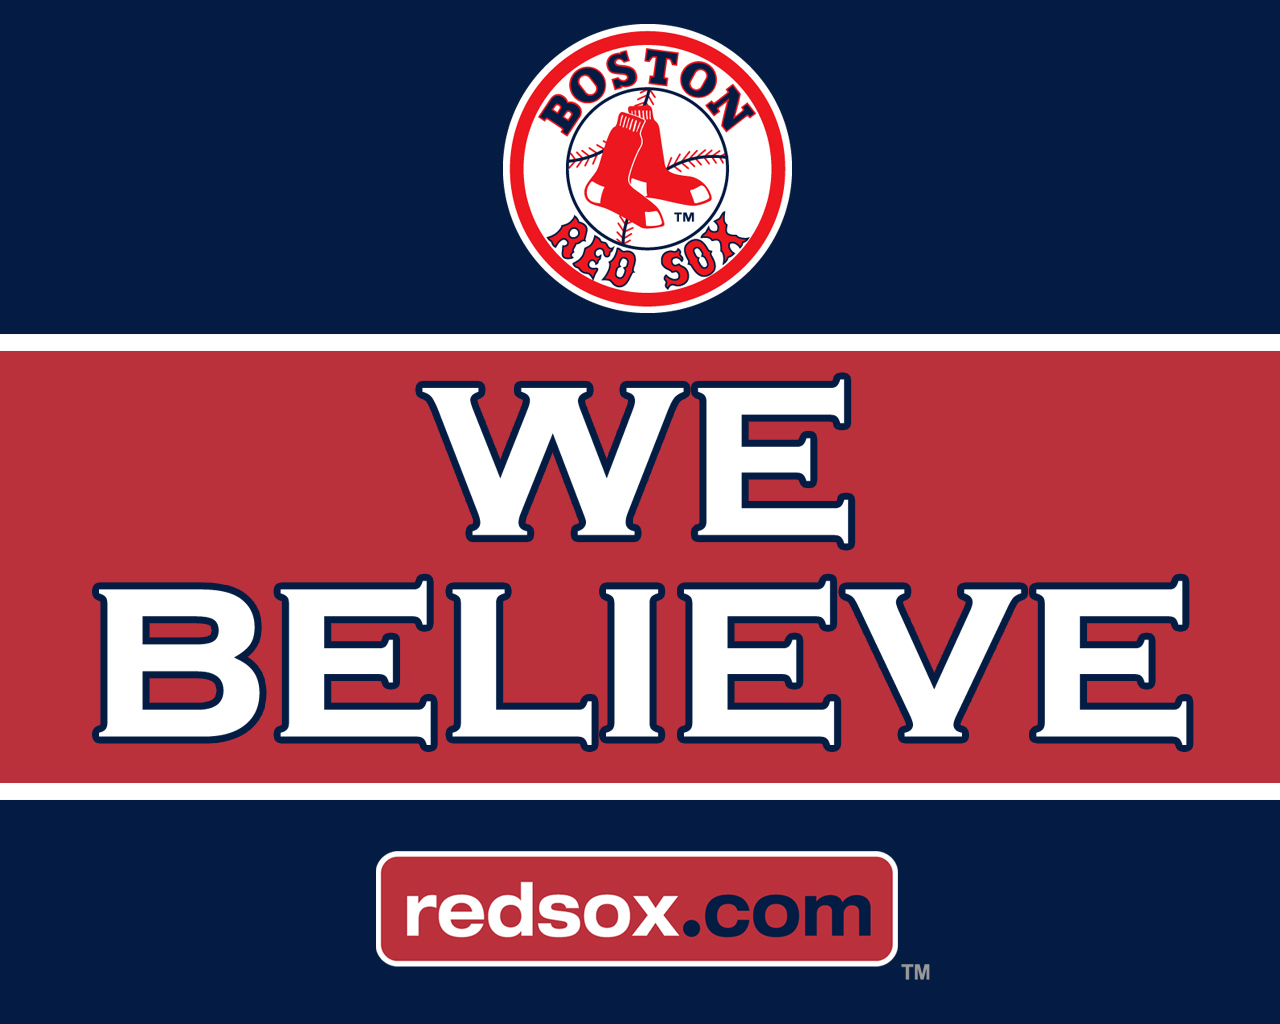 Boston Red Sox</a><br> by <a href='/profile/Bling-King/'>Bling King</a>